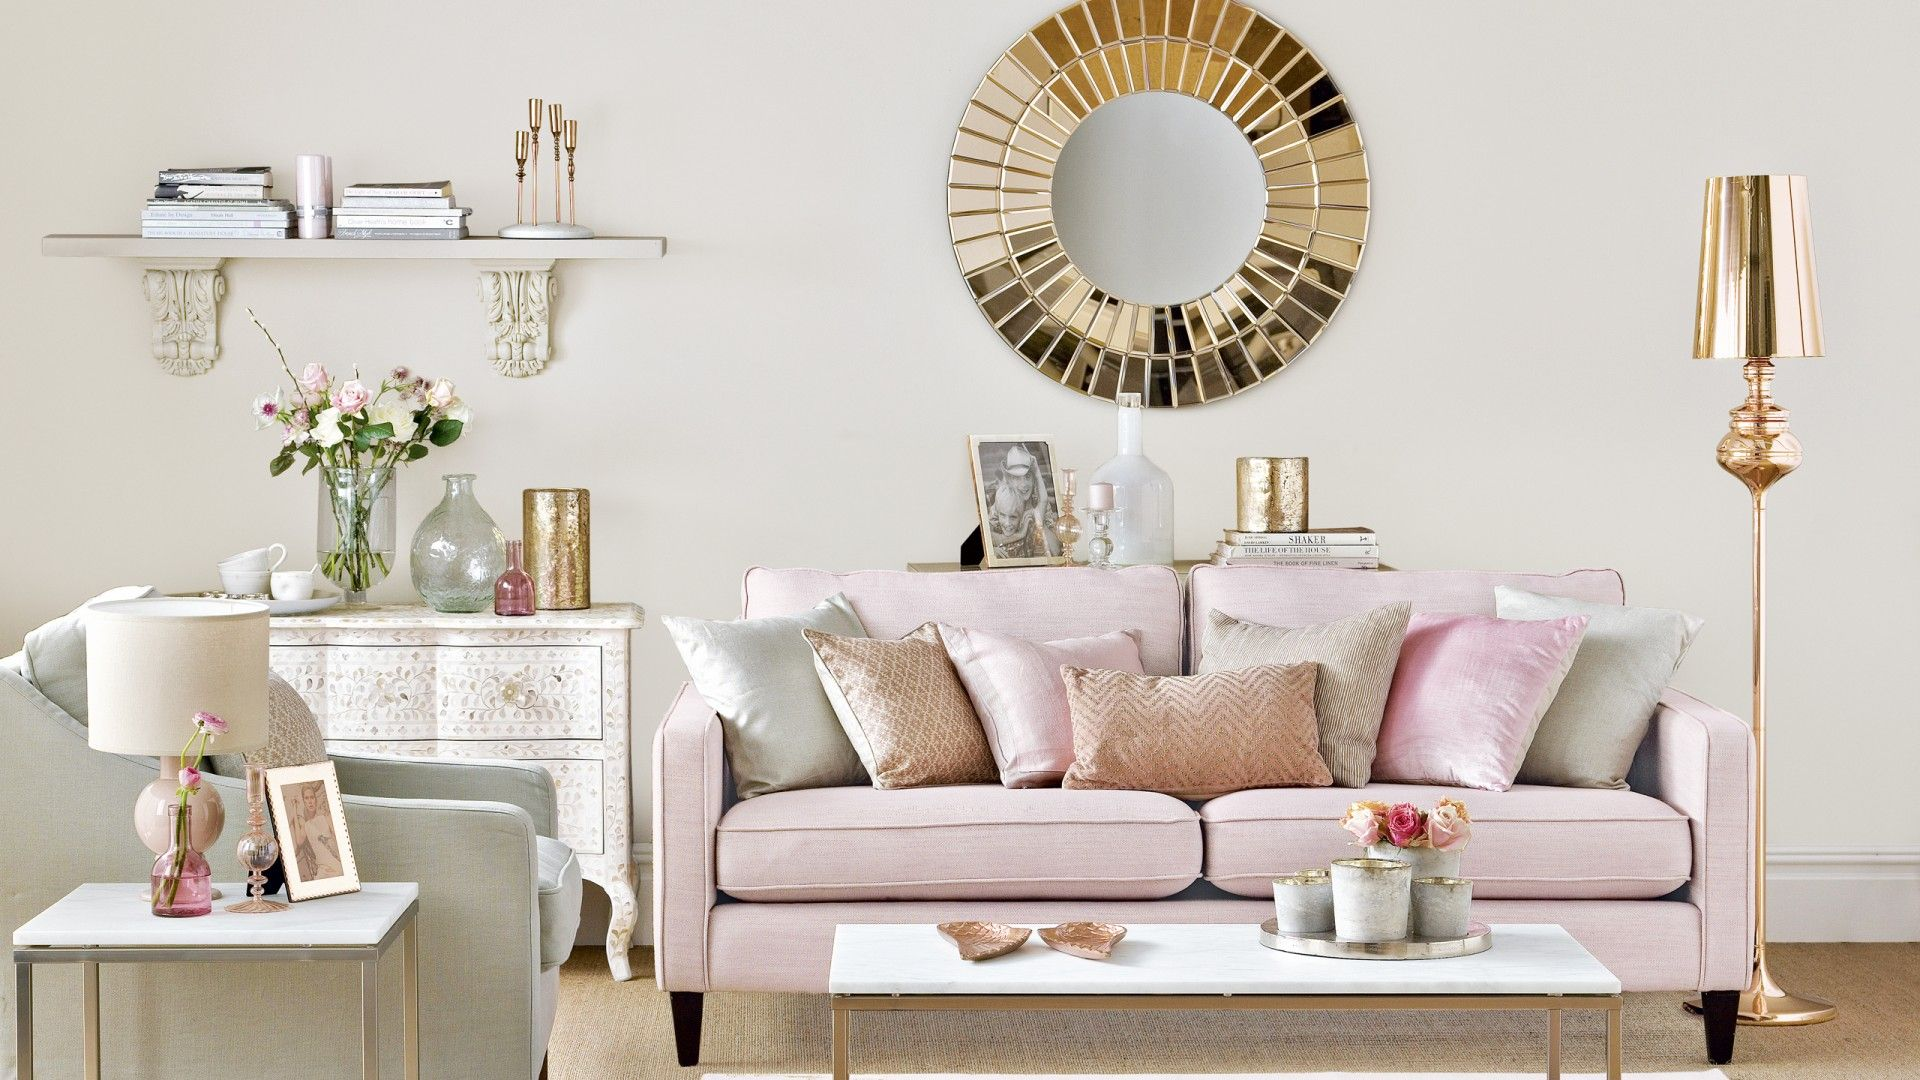 Design Trend How To Add Rose Gold To Your Home Pink Living Room Pink Living Room Decor Living Room Ideas Rose Gold